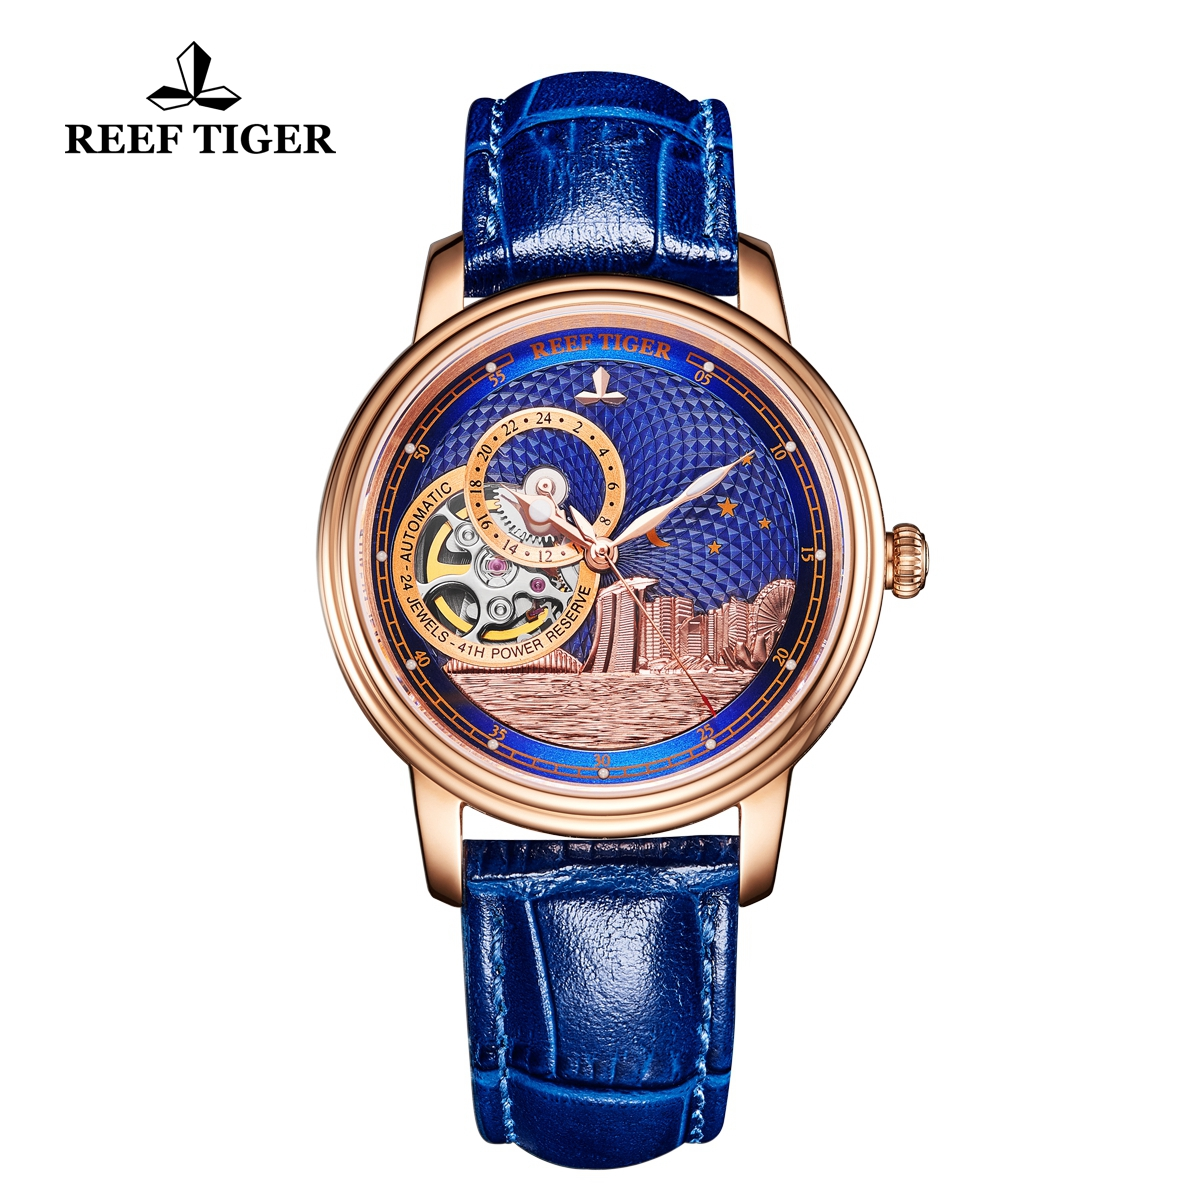 Reef Tiger Seattle Singapore Fashion Rose Gold Blue Dial Leather Strap Automatic Watch RGA1739-PLL